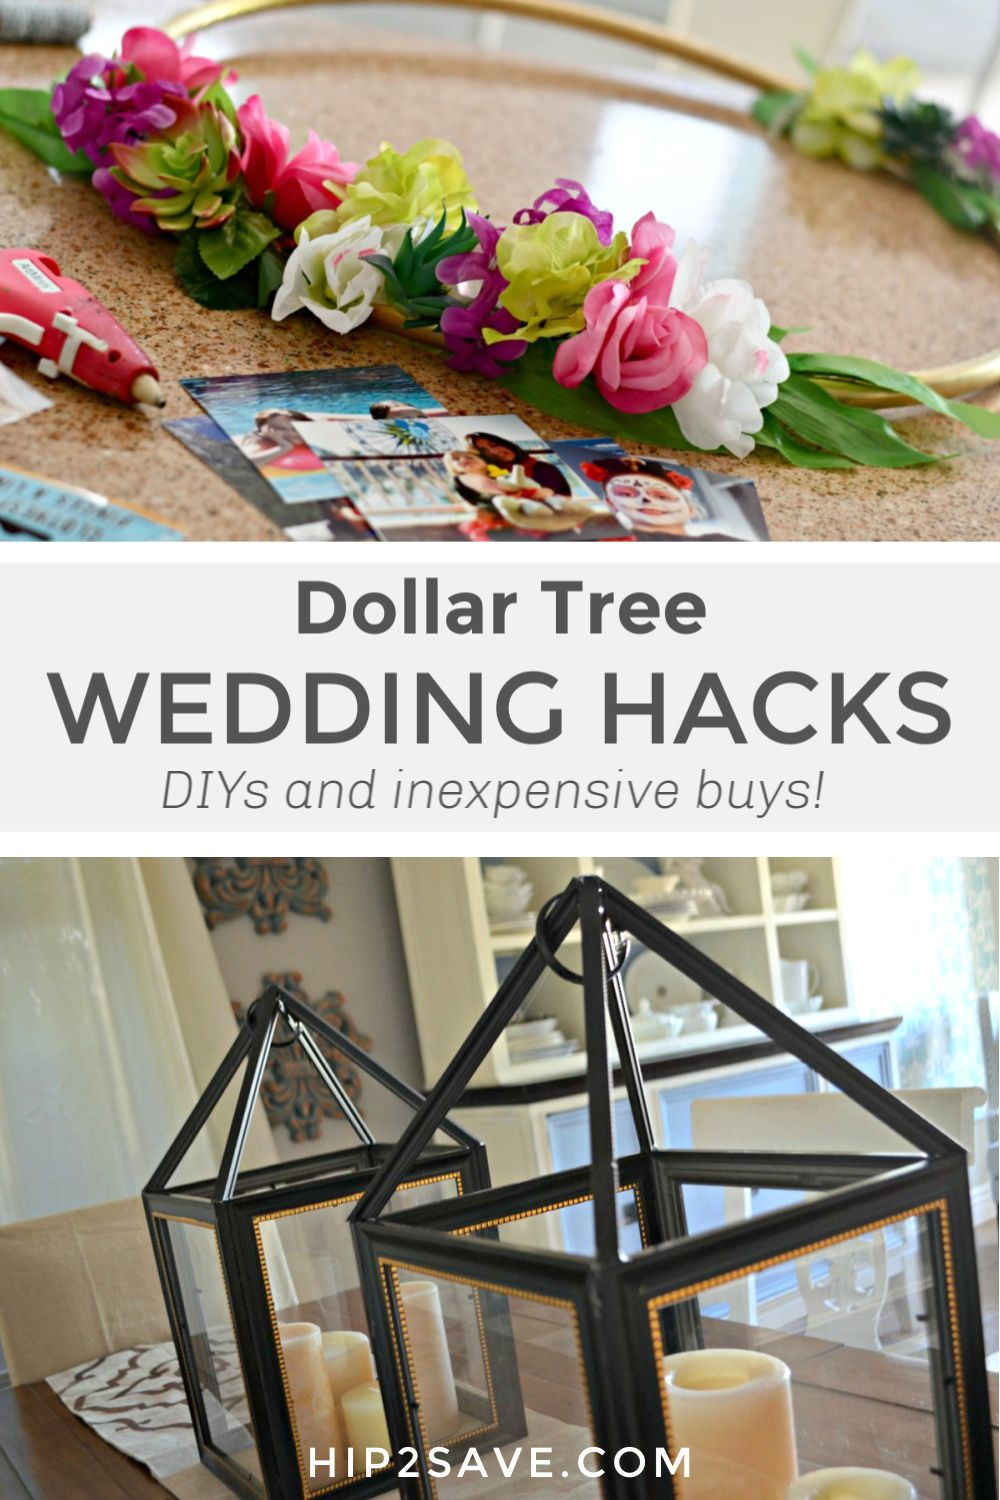 With our Dollar Tree wedding hacks, you can pull off a beautiful wedding  without br… in 2020 | Dollar tree diy wedding, Dollar tree wedding  decorations, Dollar tree wedding